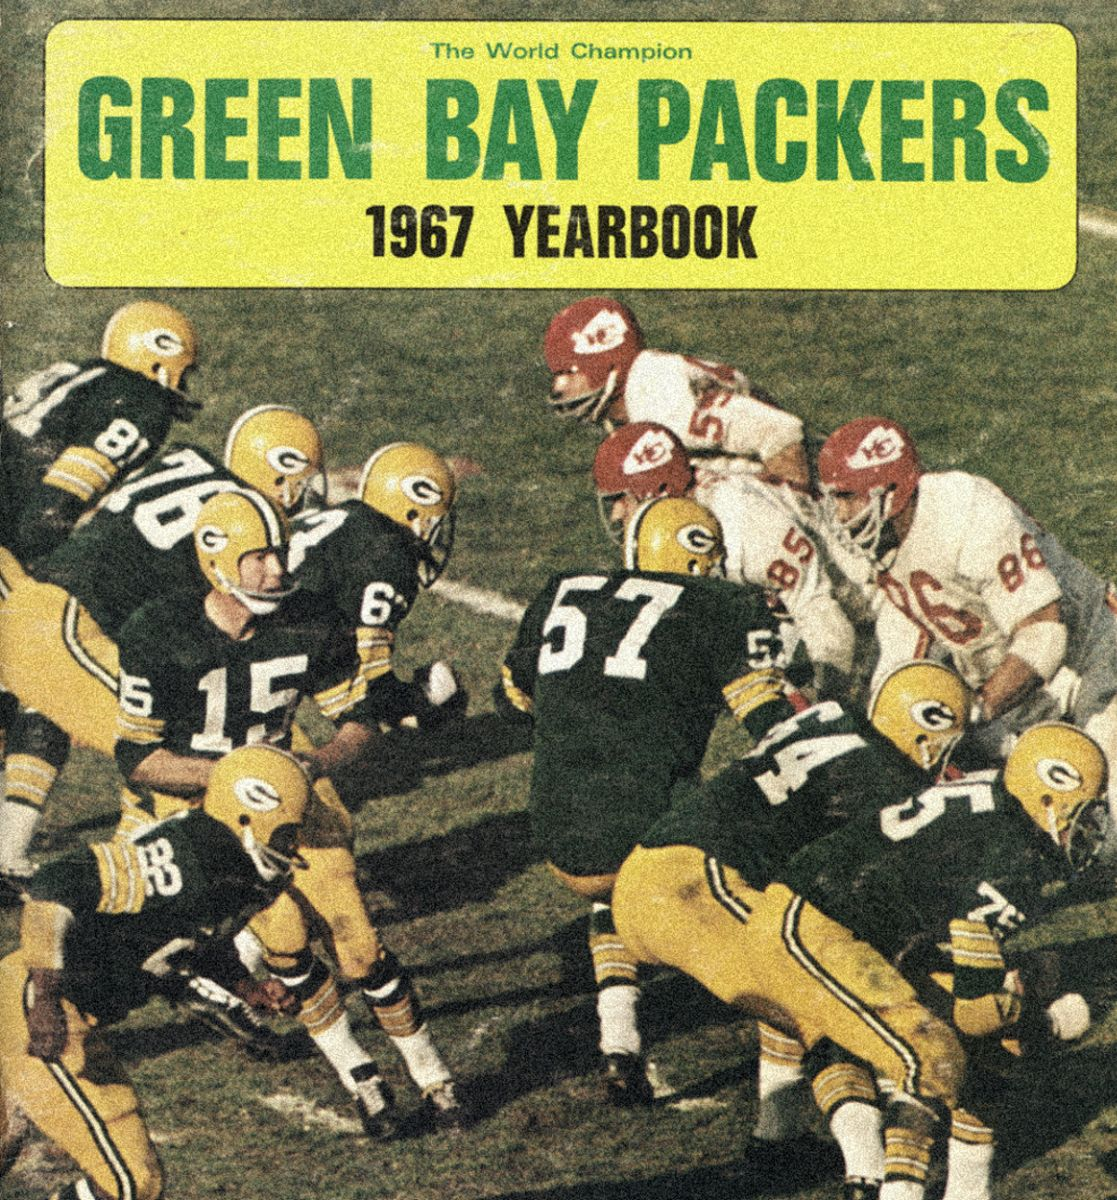 Green Bay Packers 1967 Yearbook Cover Green Bay Packers Green Bay Packers Fans Green Bay